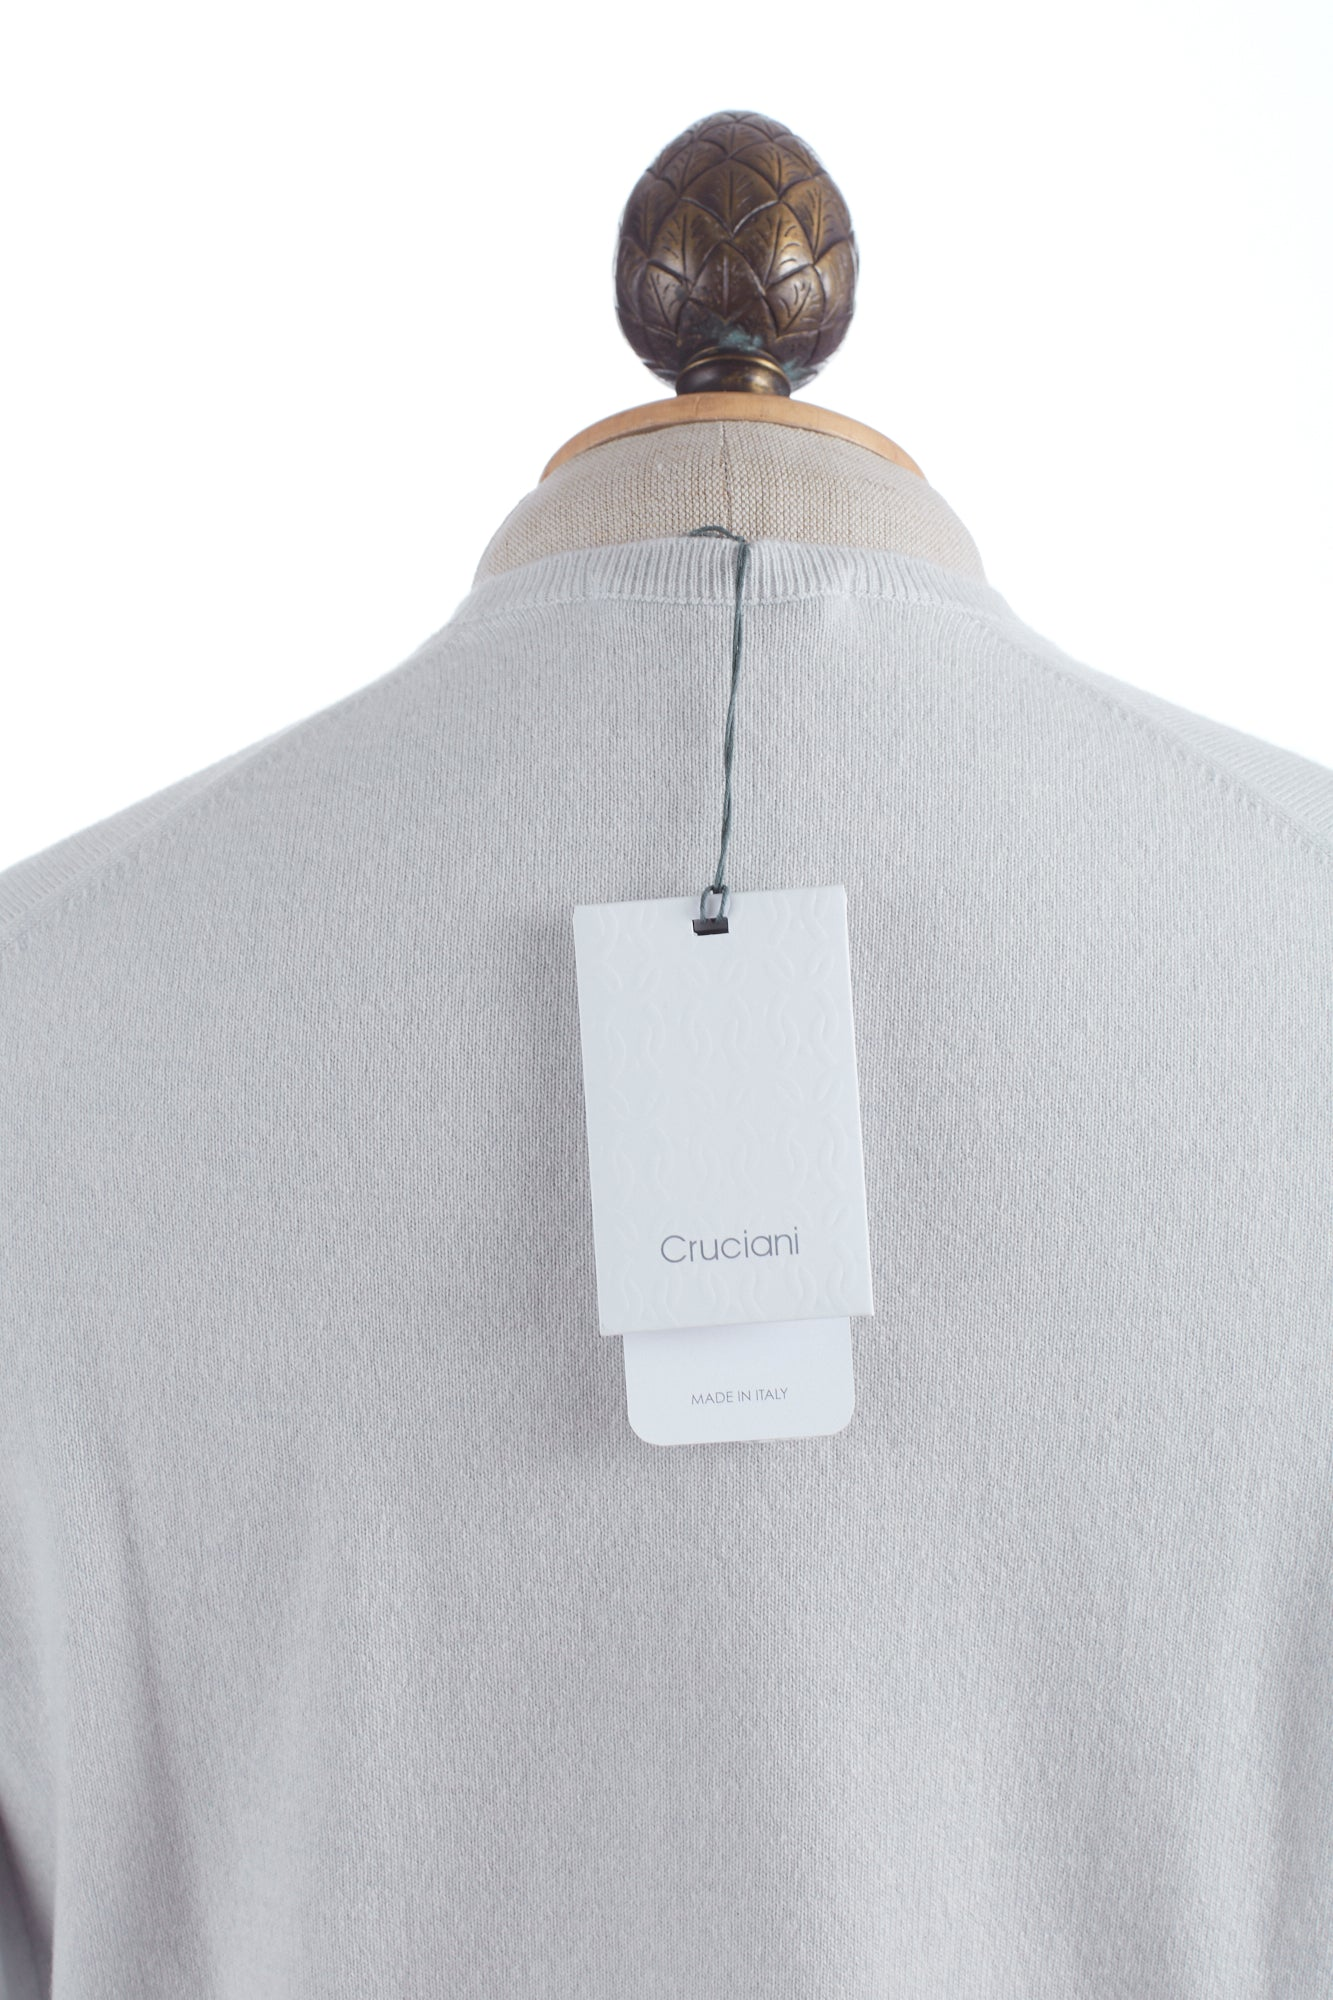 Cruciani Icy White Cashmere Tag